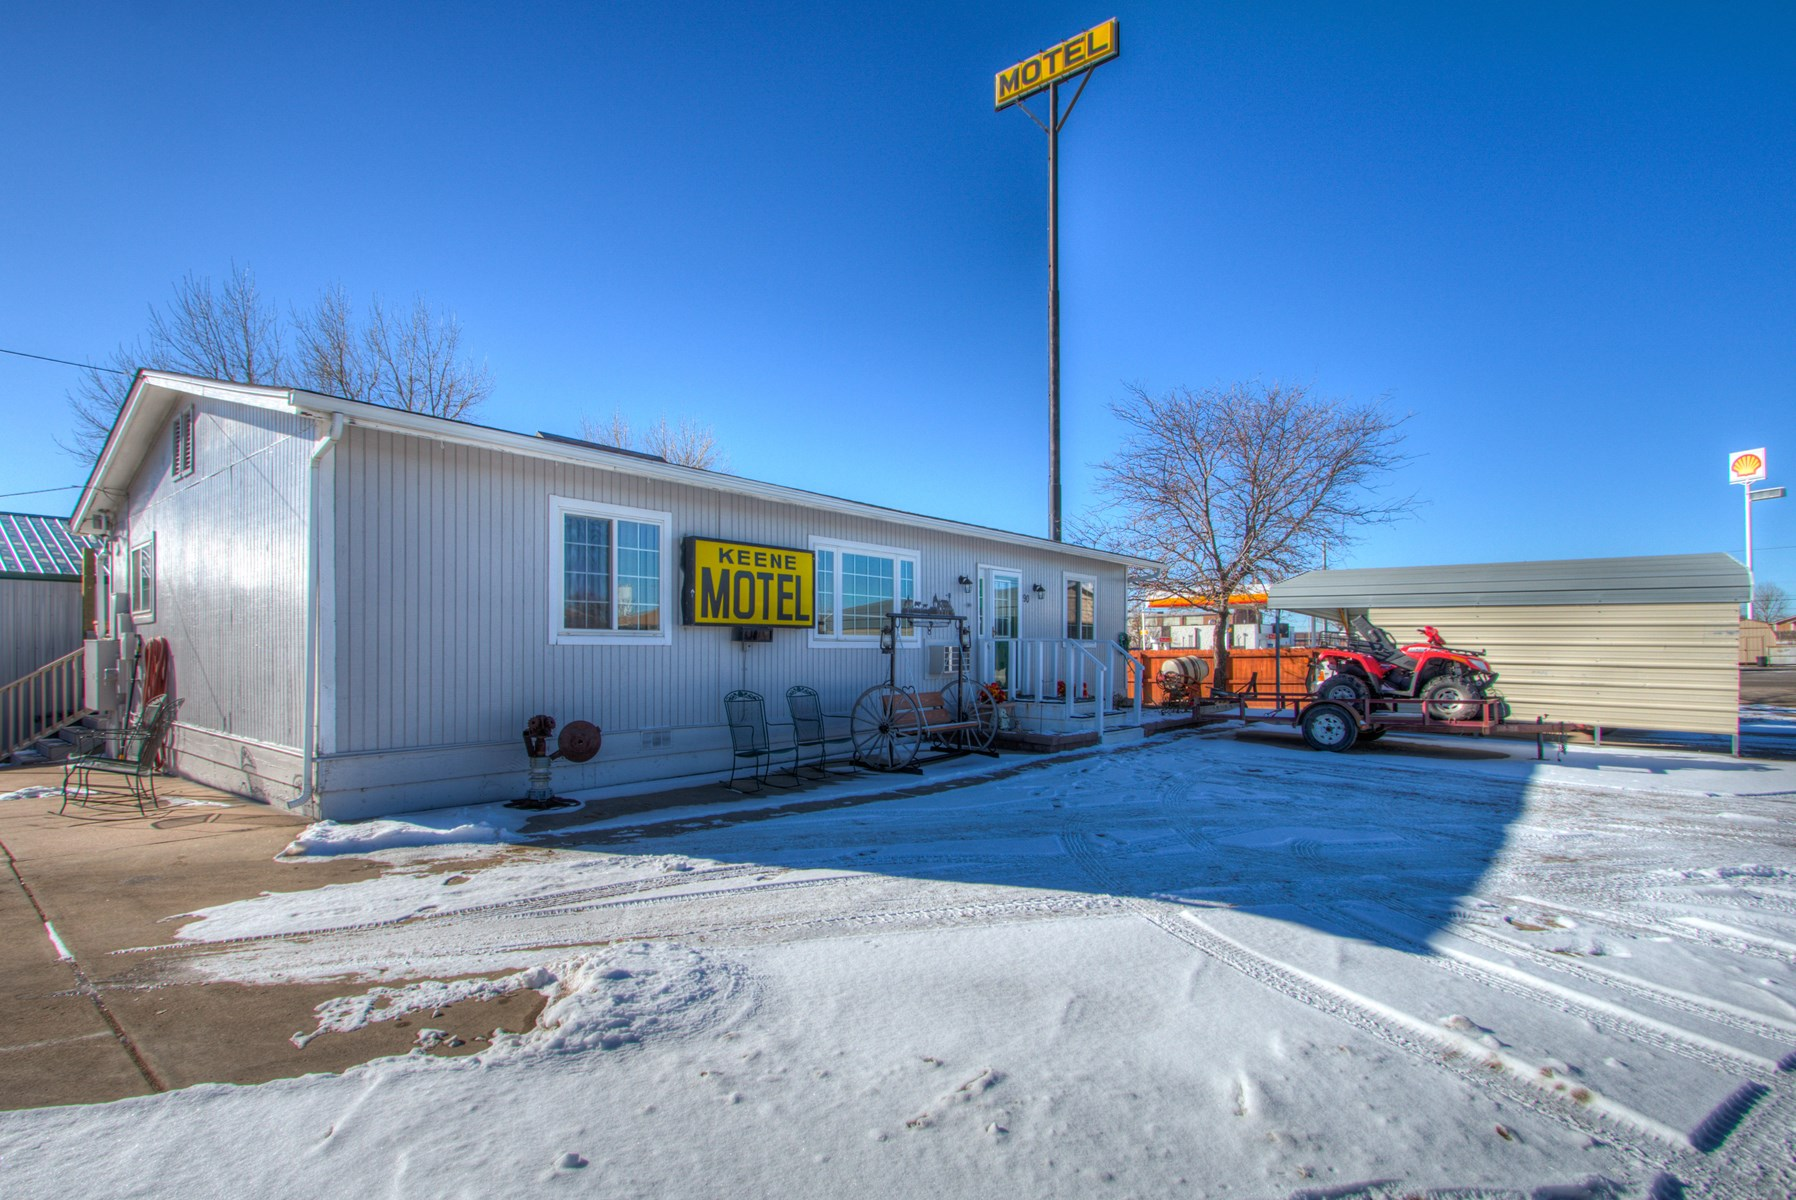 Colorado Motel For Sale Keenesburg NE of Denver & Brighton